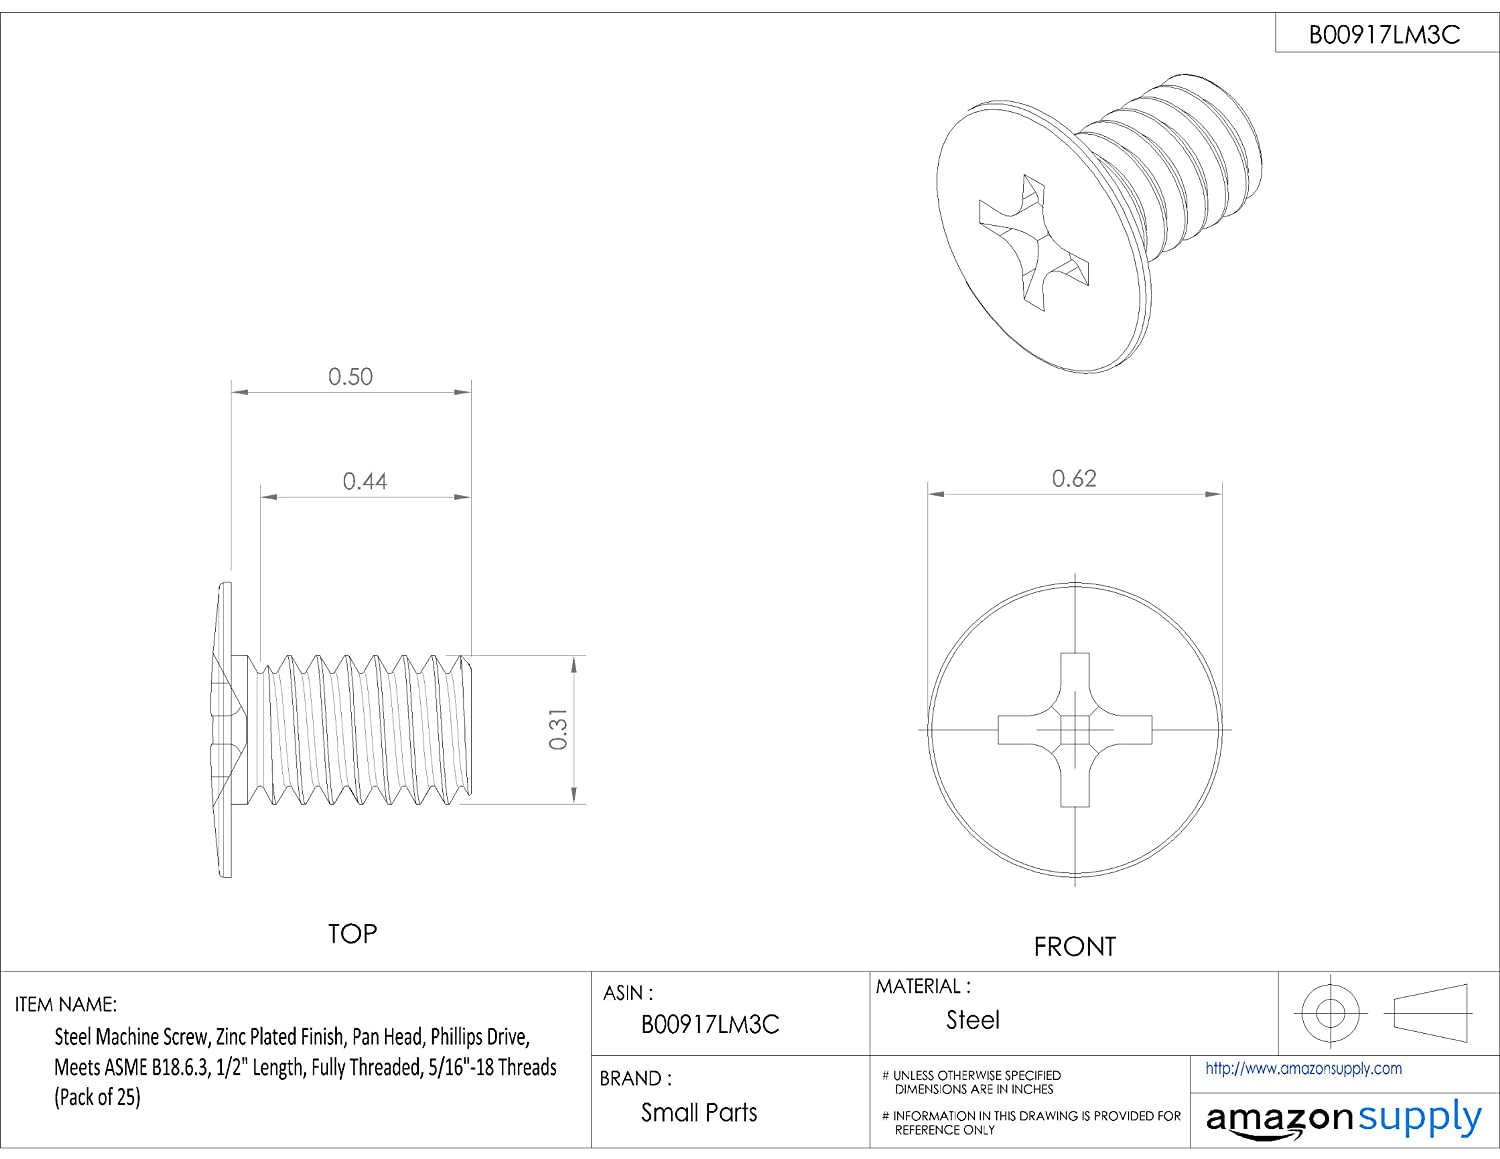 Small Parts 587663-P1 Pack of 50 1//4-20 UNC Threads Pack of 50 2 Length Zinc Plated Finish Steel Machine Screw 2 Length 1//4-20 UNC Threads Fully Threaded Pan Head Meets ASME B18.6.3 Phillips Drive